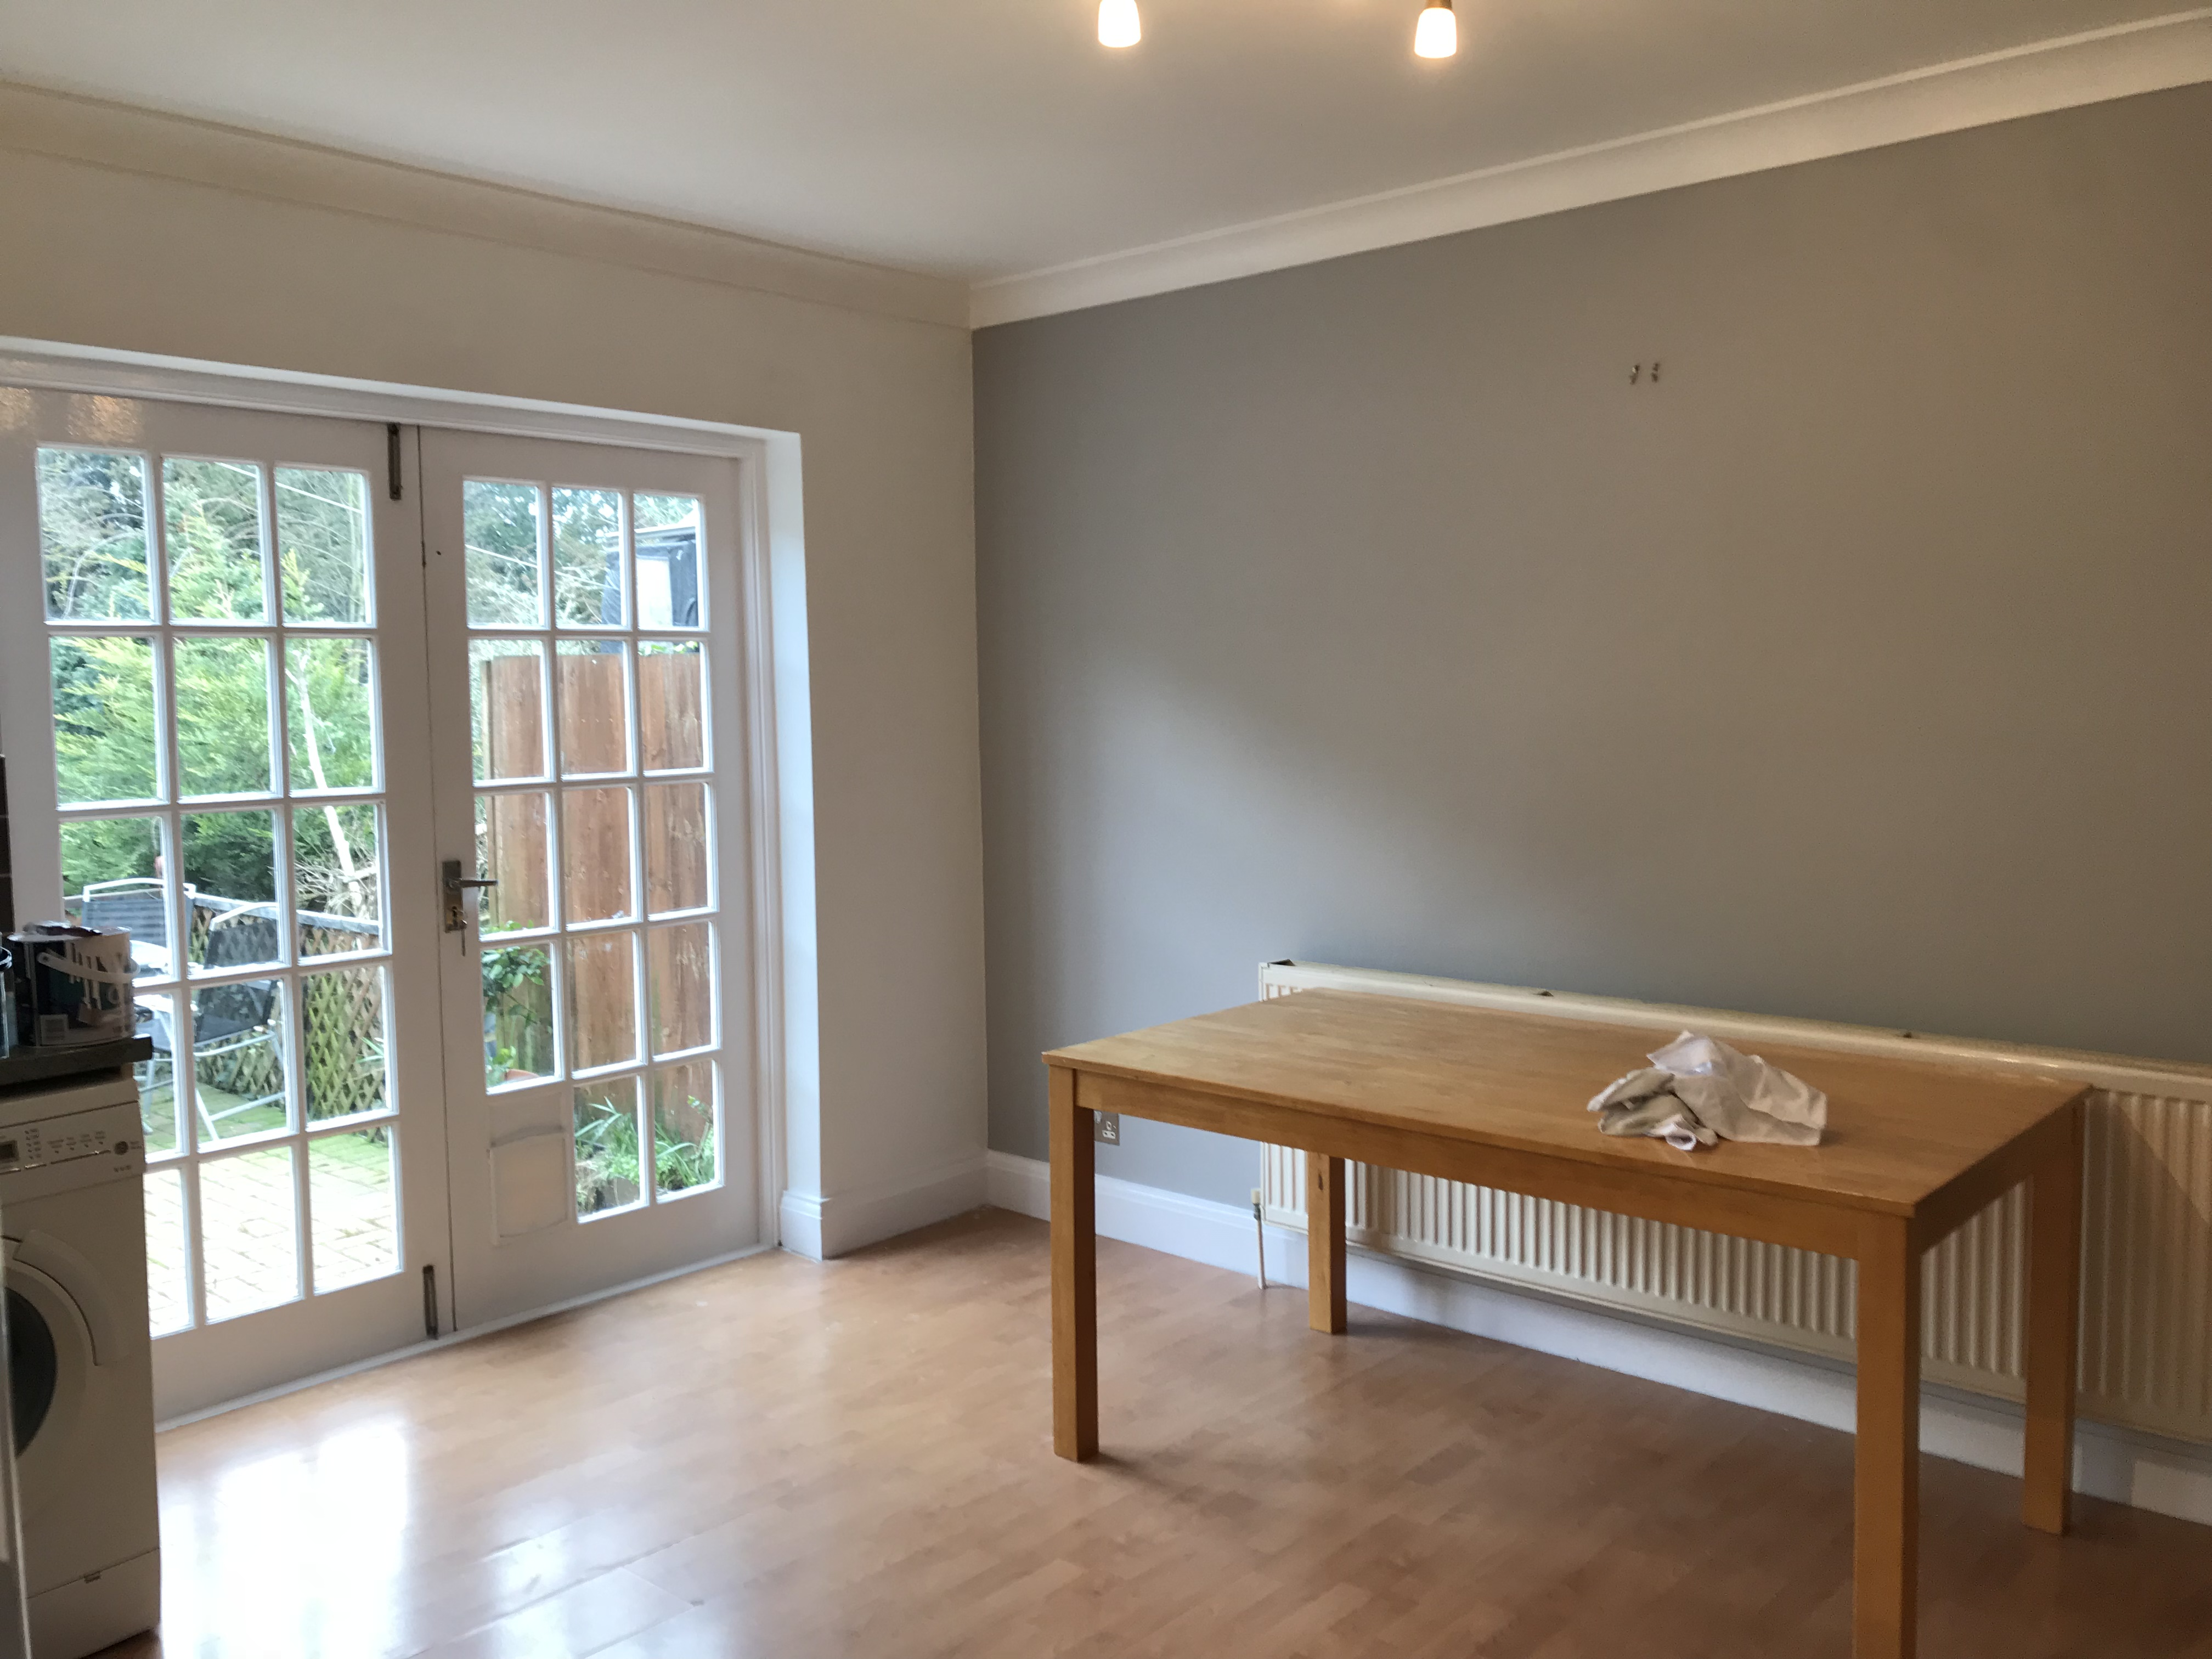 Painting and decorating Hoddesdon